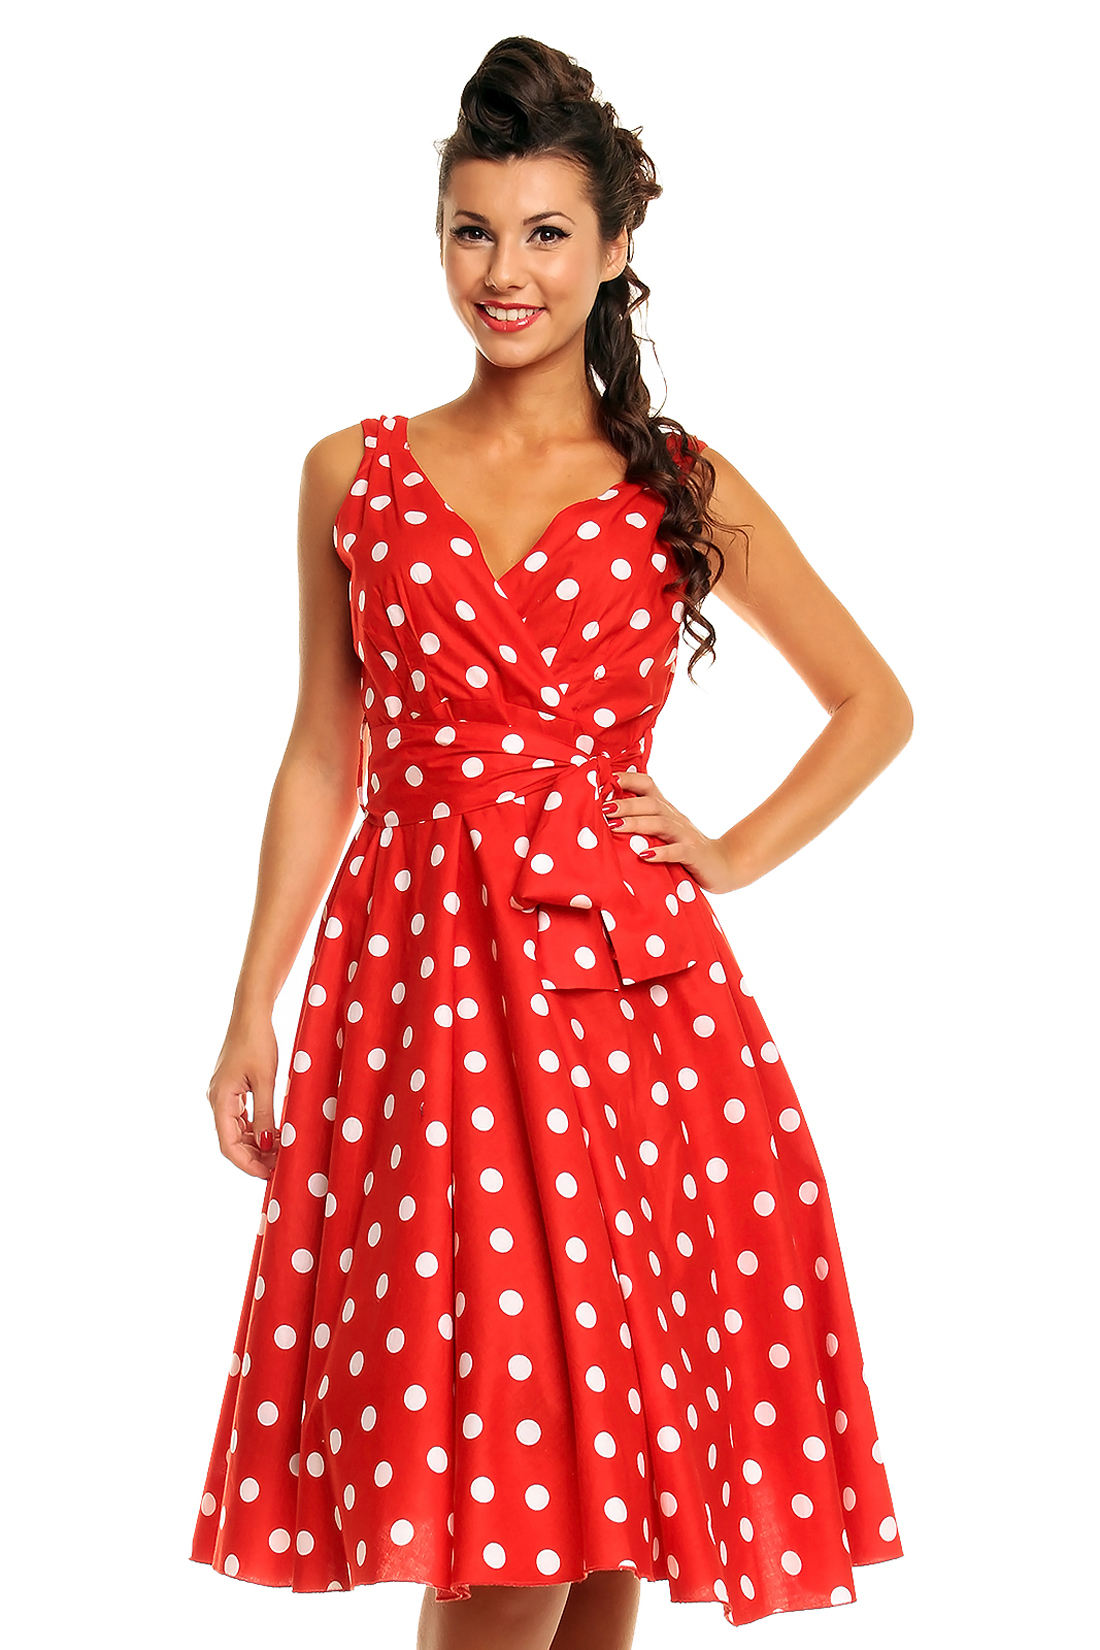 Ladies Marilyn 1950 S Rockabilly Plus Size Polka Dot Retro